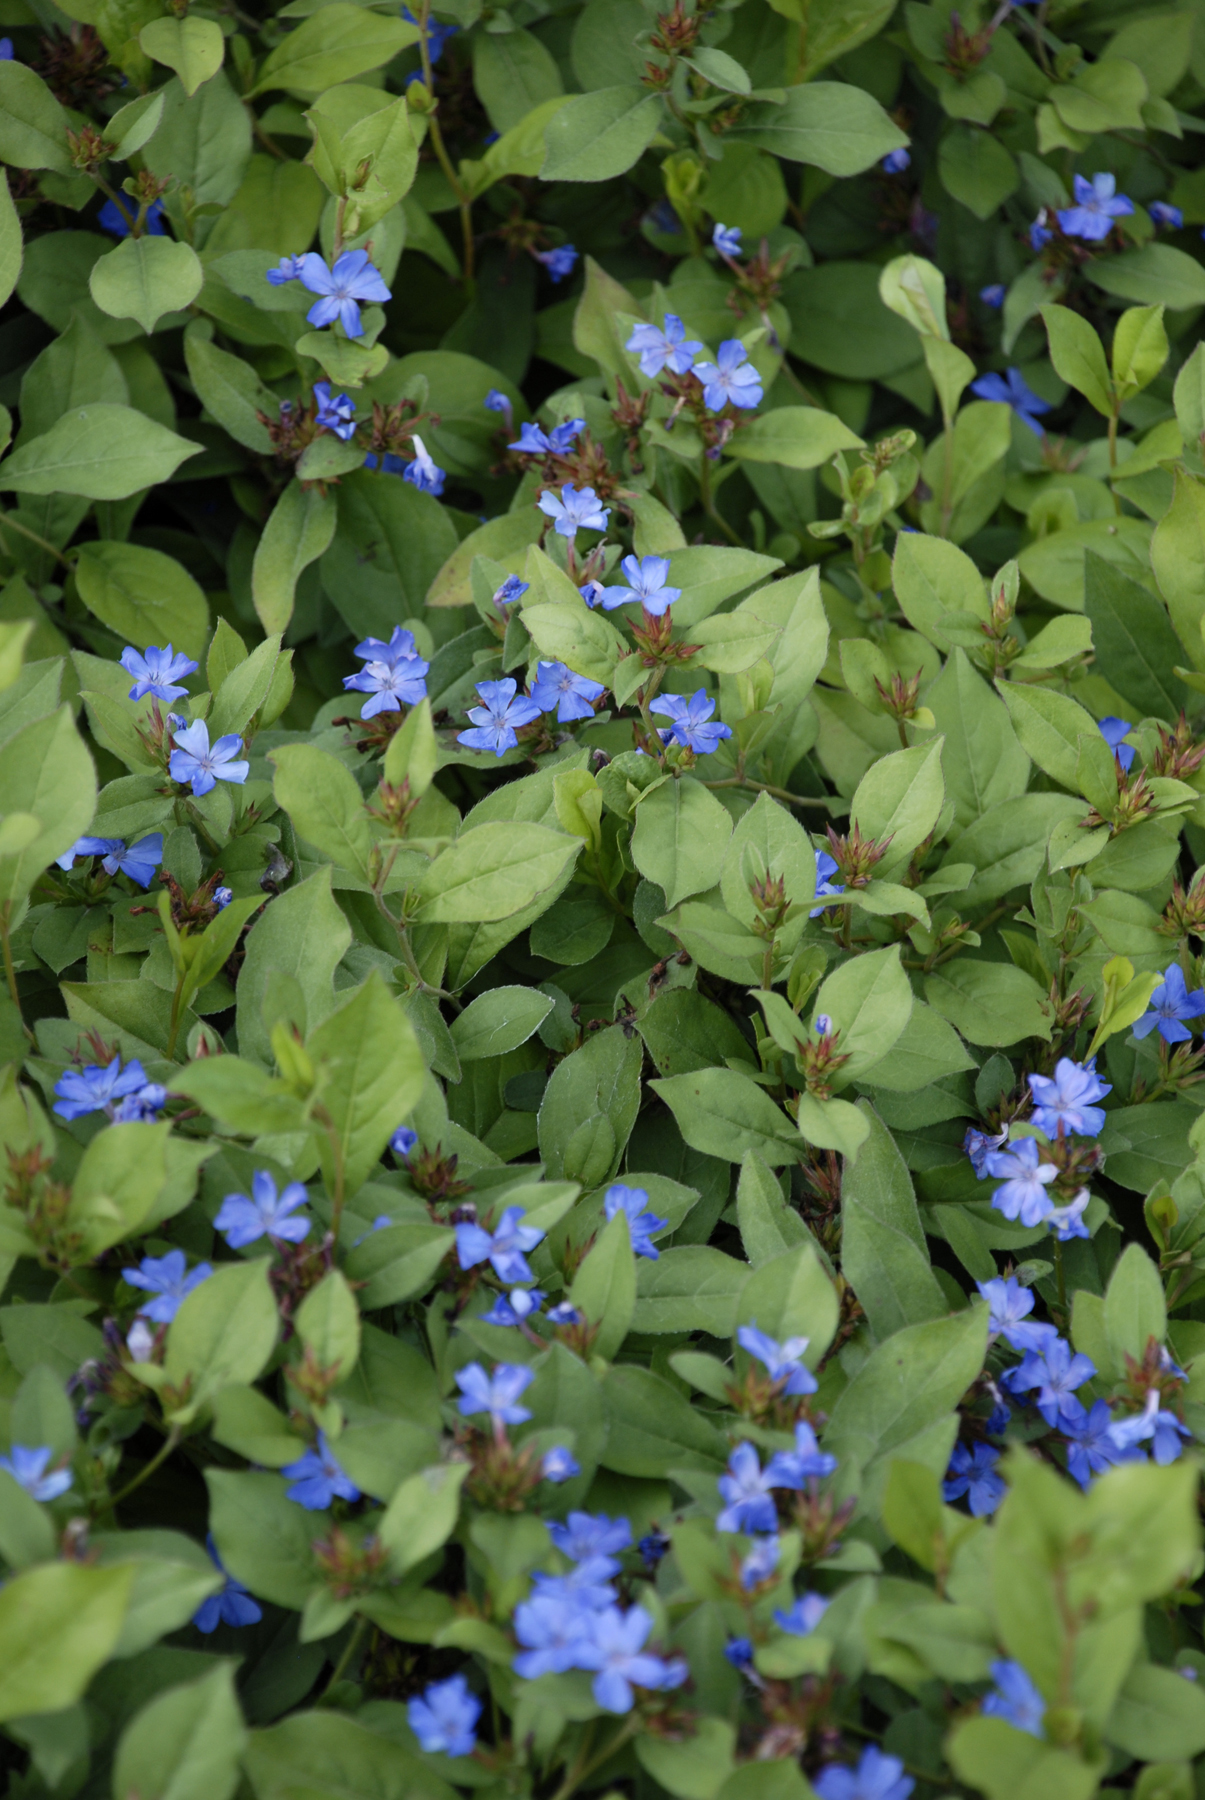 Creeping Blue Plumbago, Ceratostigma plumbaginoides, makes a lovely groundcover